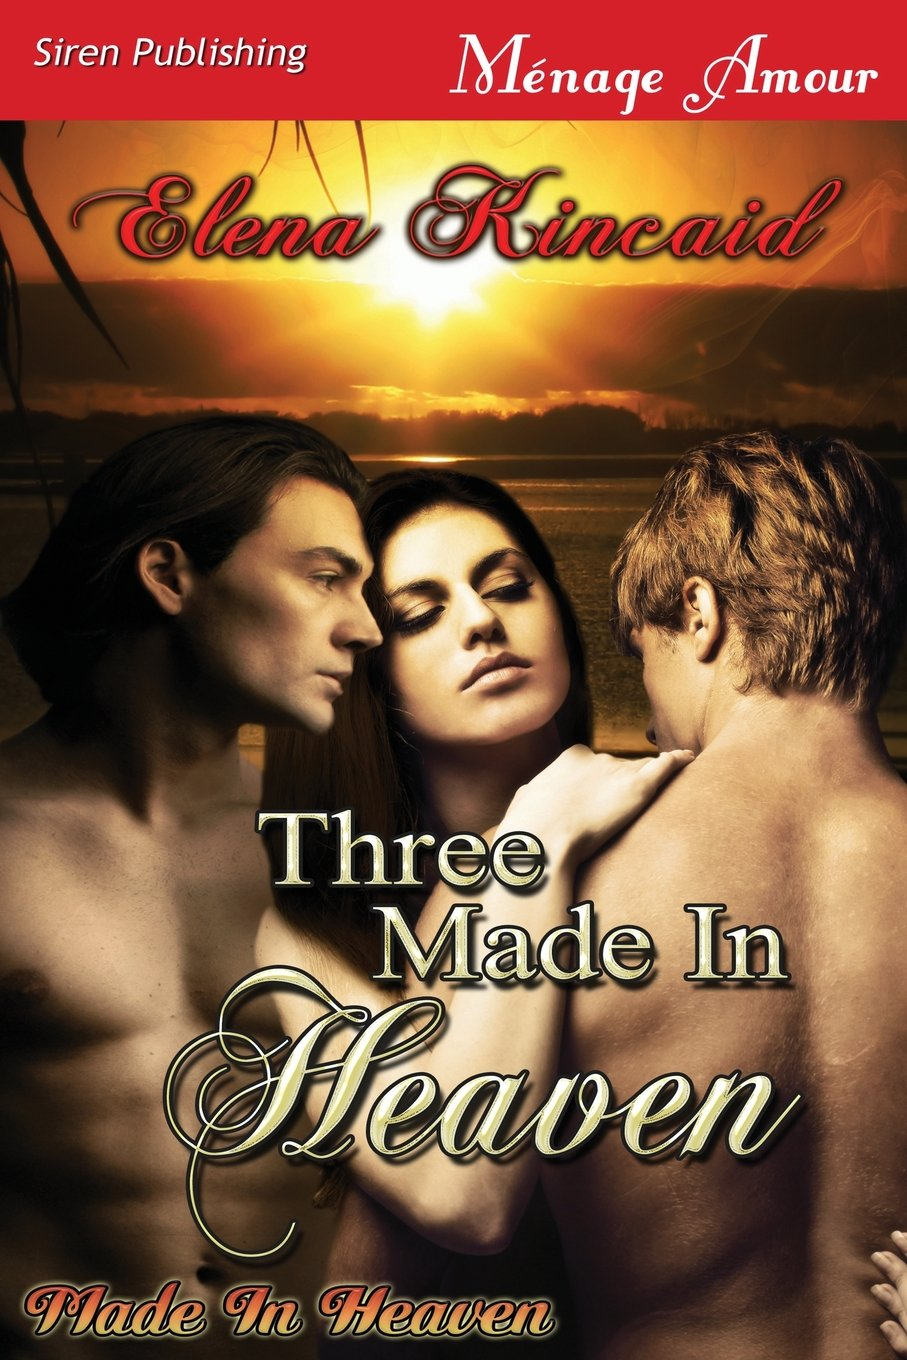 Download Three Made in Heaven [Made in Heaven] (Siren Publishing Menage Amour) pdf